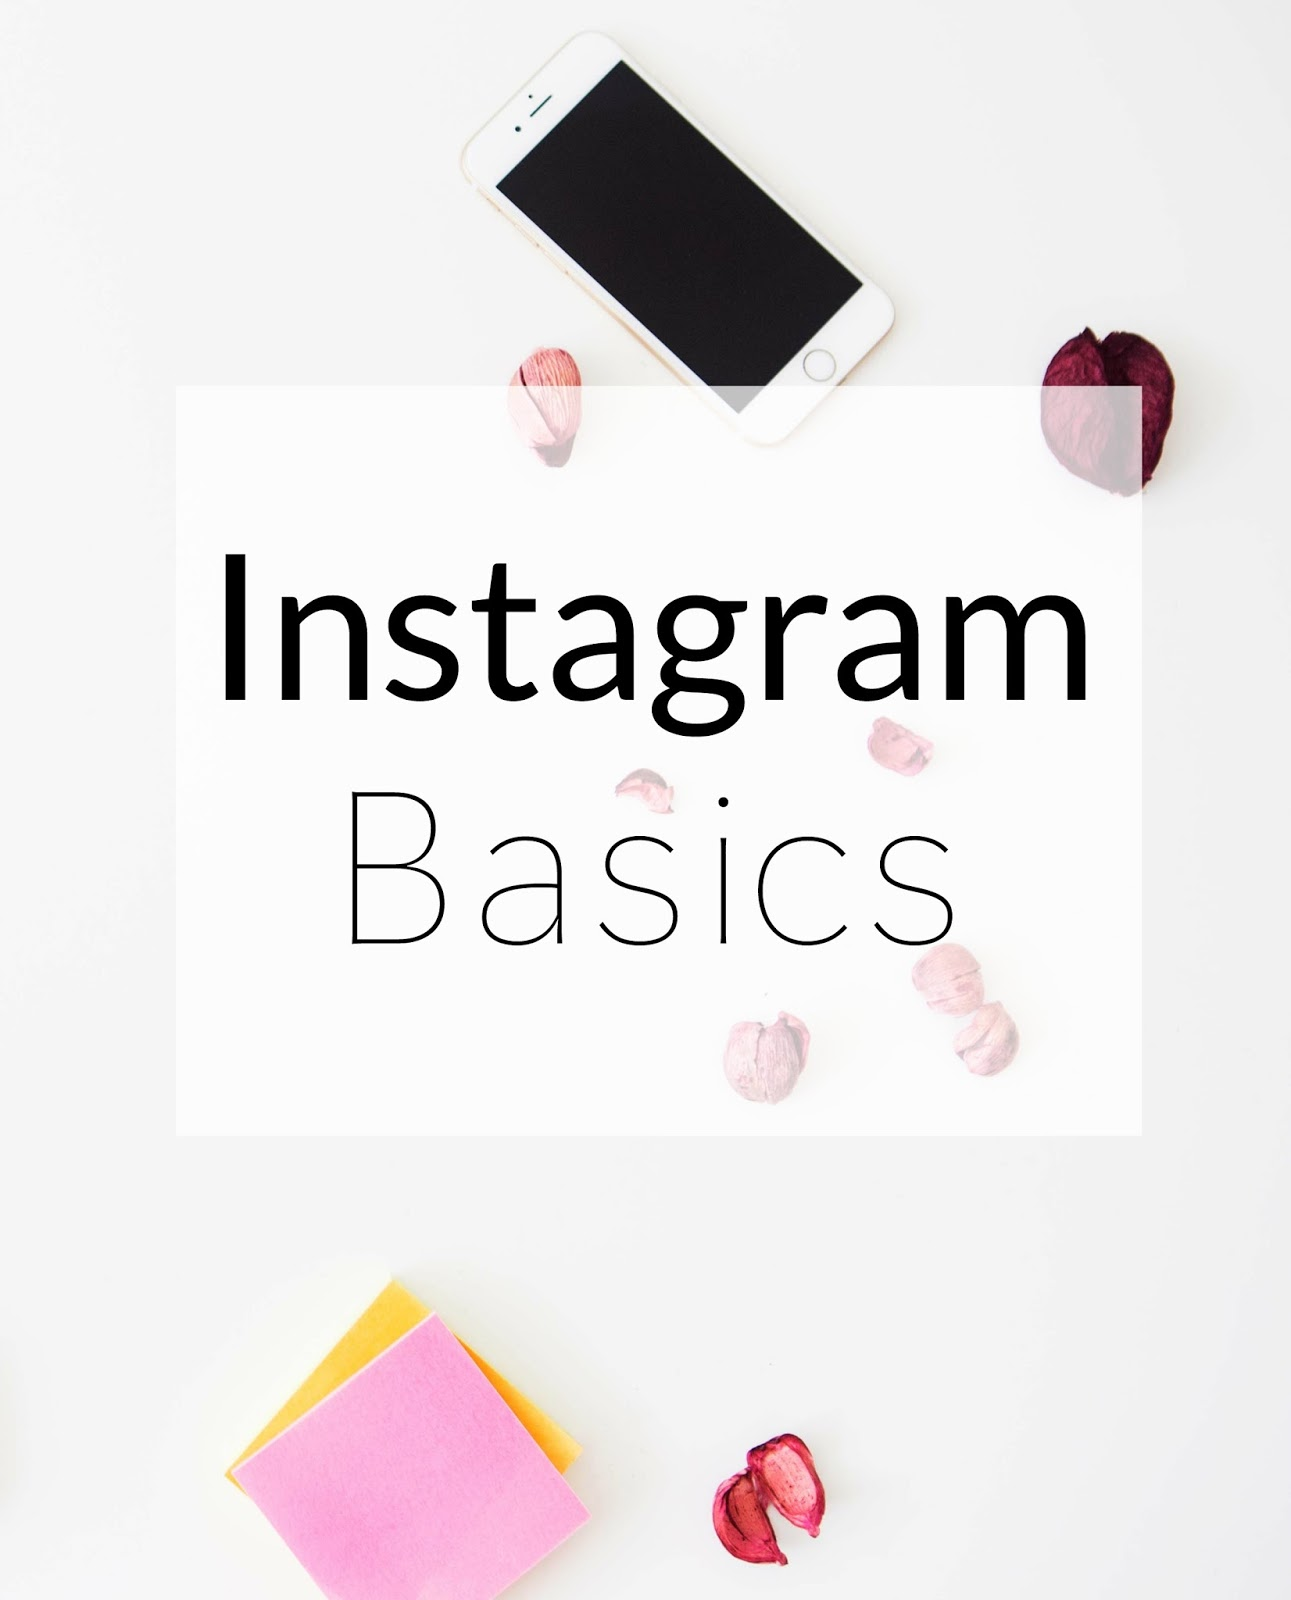 The Basics of Instagram: finding your niche, scheduling pictures and getting followers.